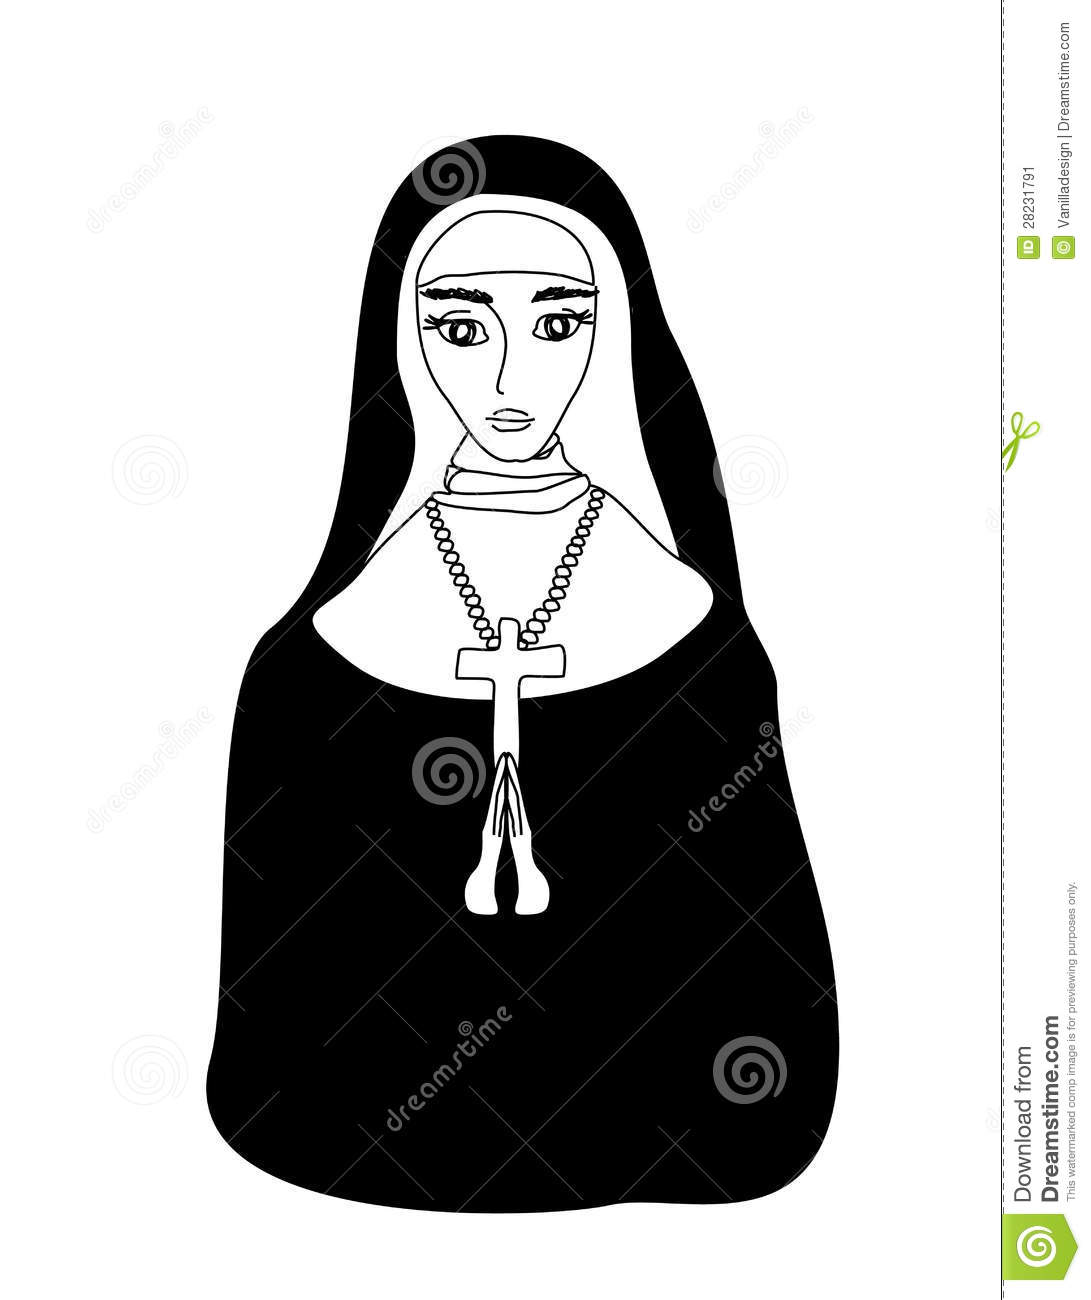 More similar stock images of ` Vector illustration of nun `